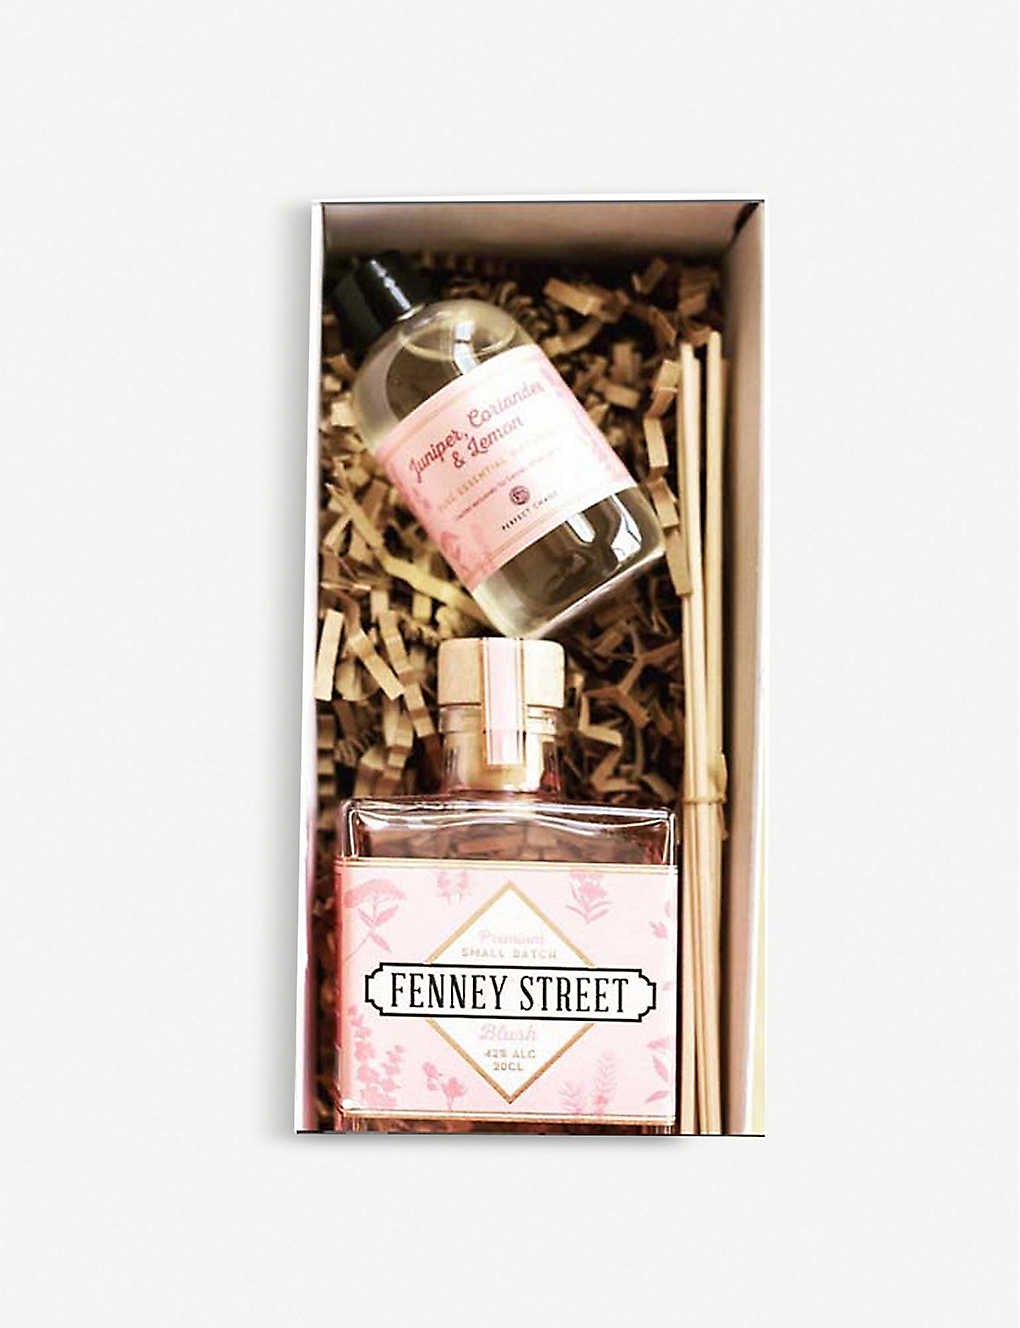 GIN: Fenney Street Blush Gin and fragrance diffuser gift set 200ml